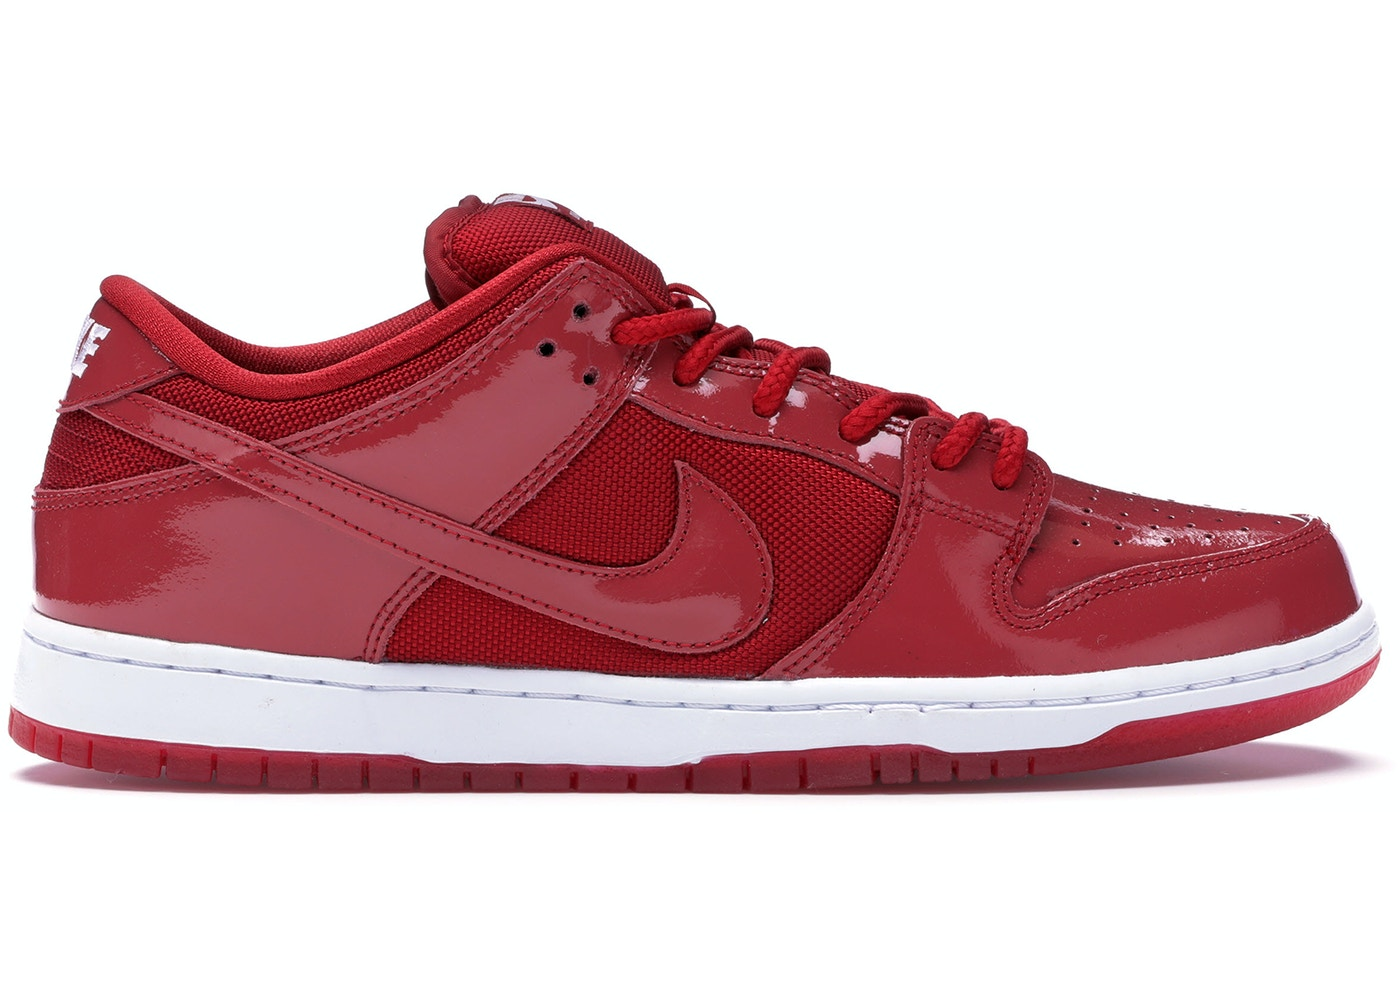 promo code 9dbc6 4dd62 Nike Dunk SB Low Red Patent Leather